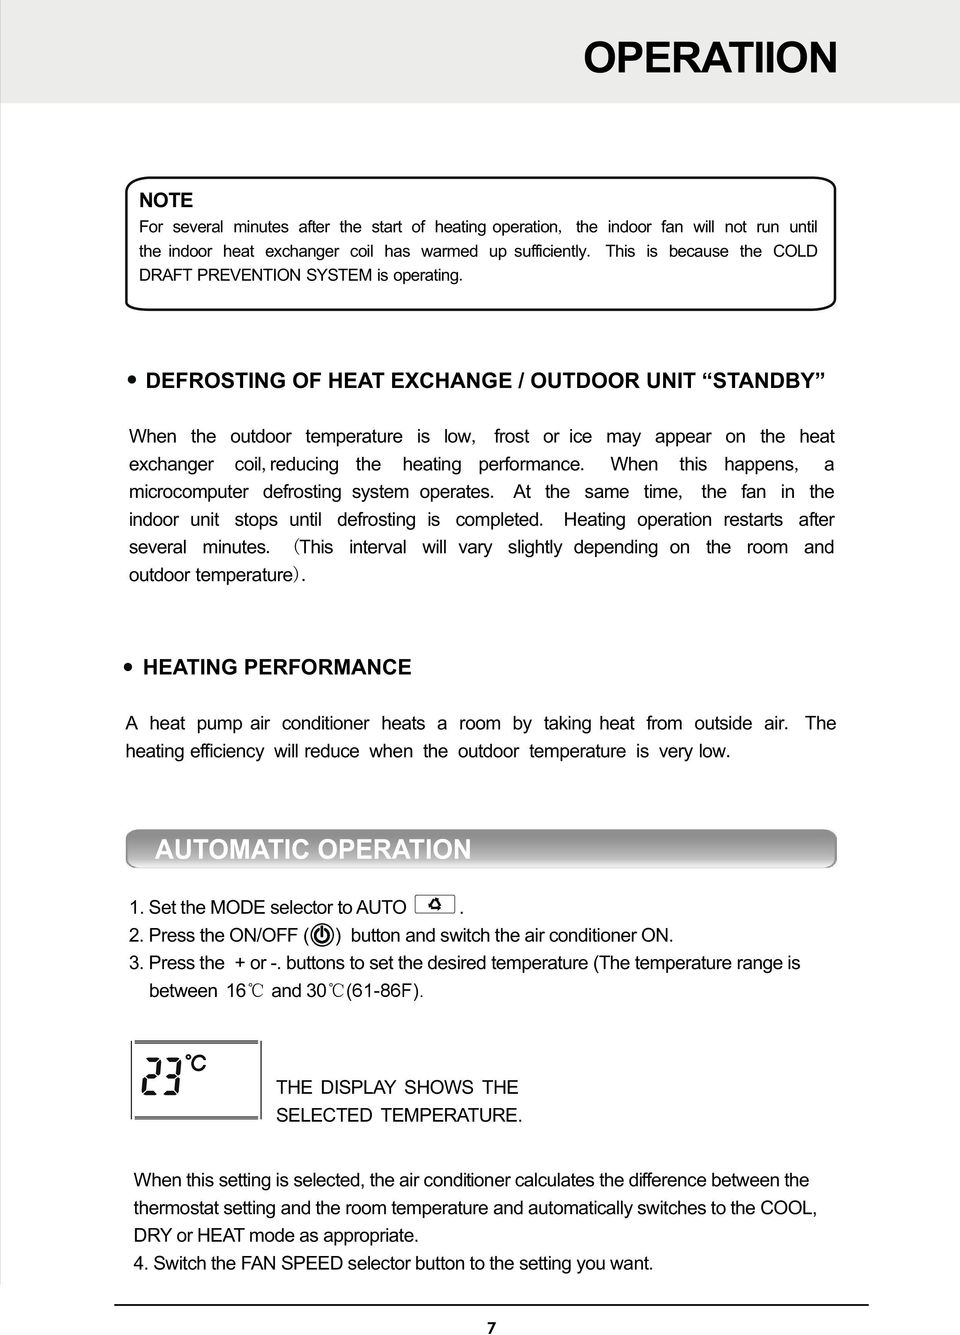 DEFROSTING OF HEAT EXCHANGE / OUTDOOR UNIT STANDBY When the outdoor temperature is low, frost or ice may appear on the heat exchanger coil,reducing the heating performance.